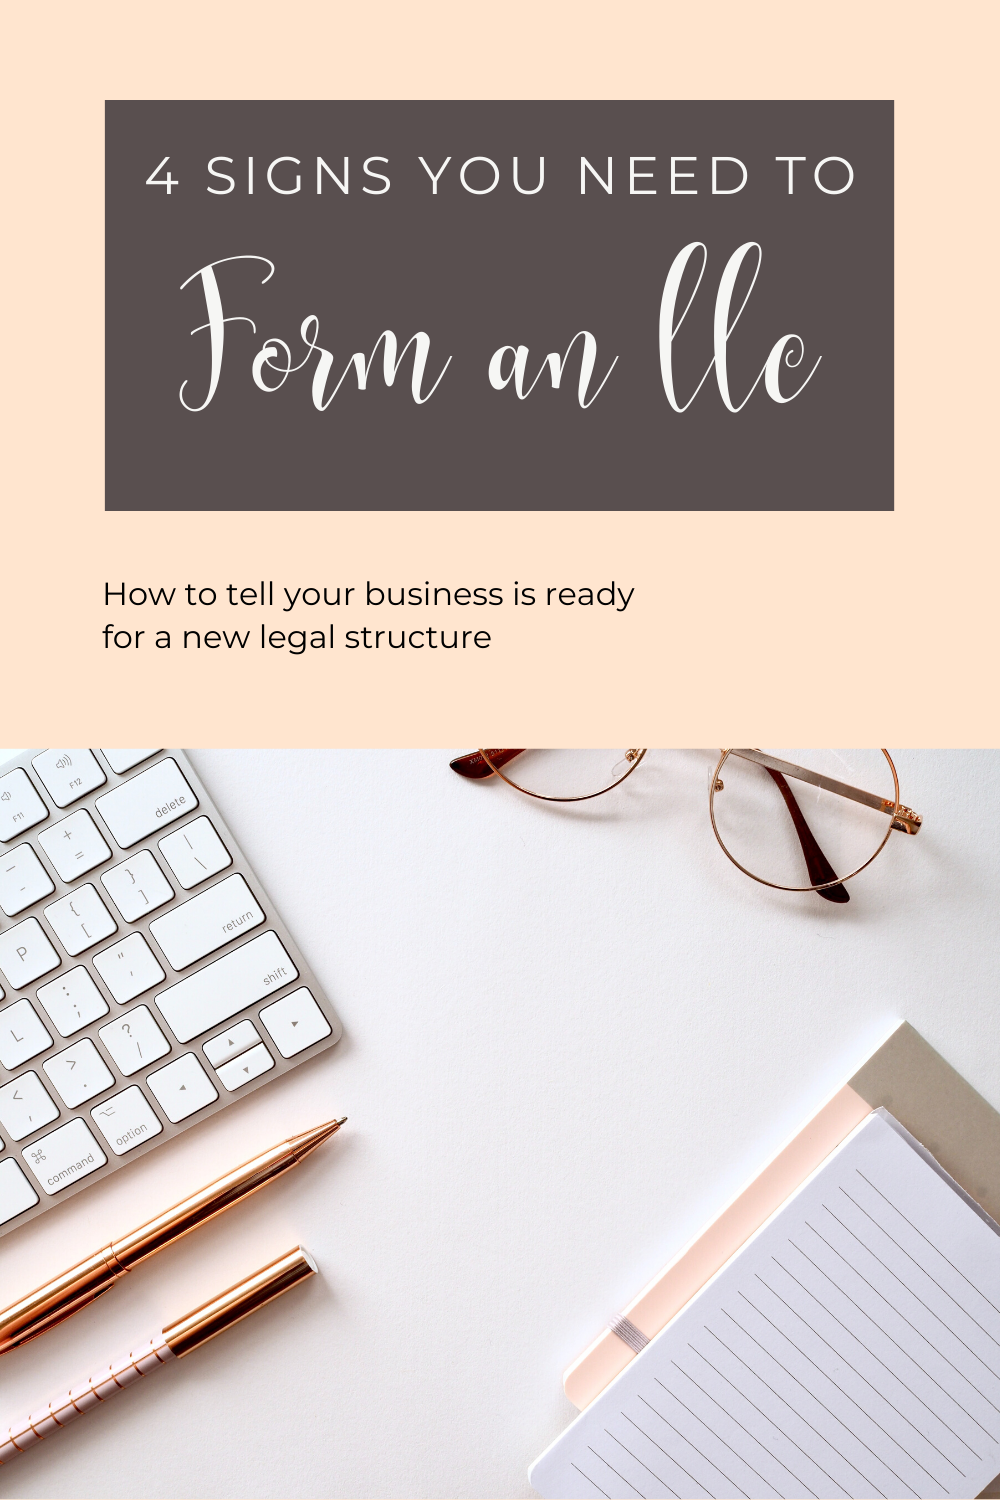 4 Signs You Need to Form an LLC